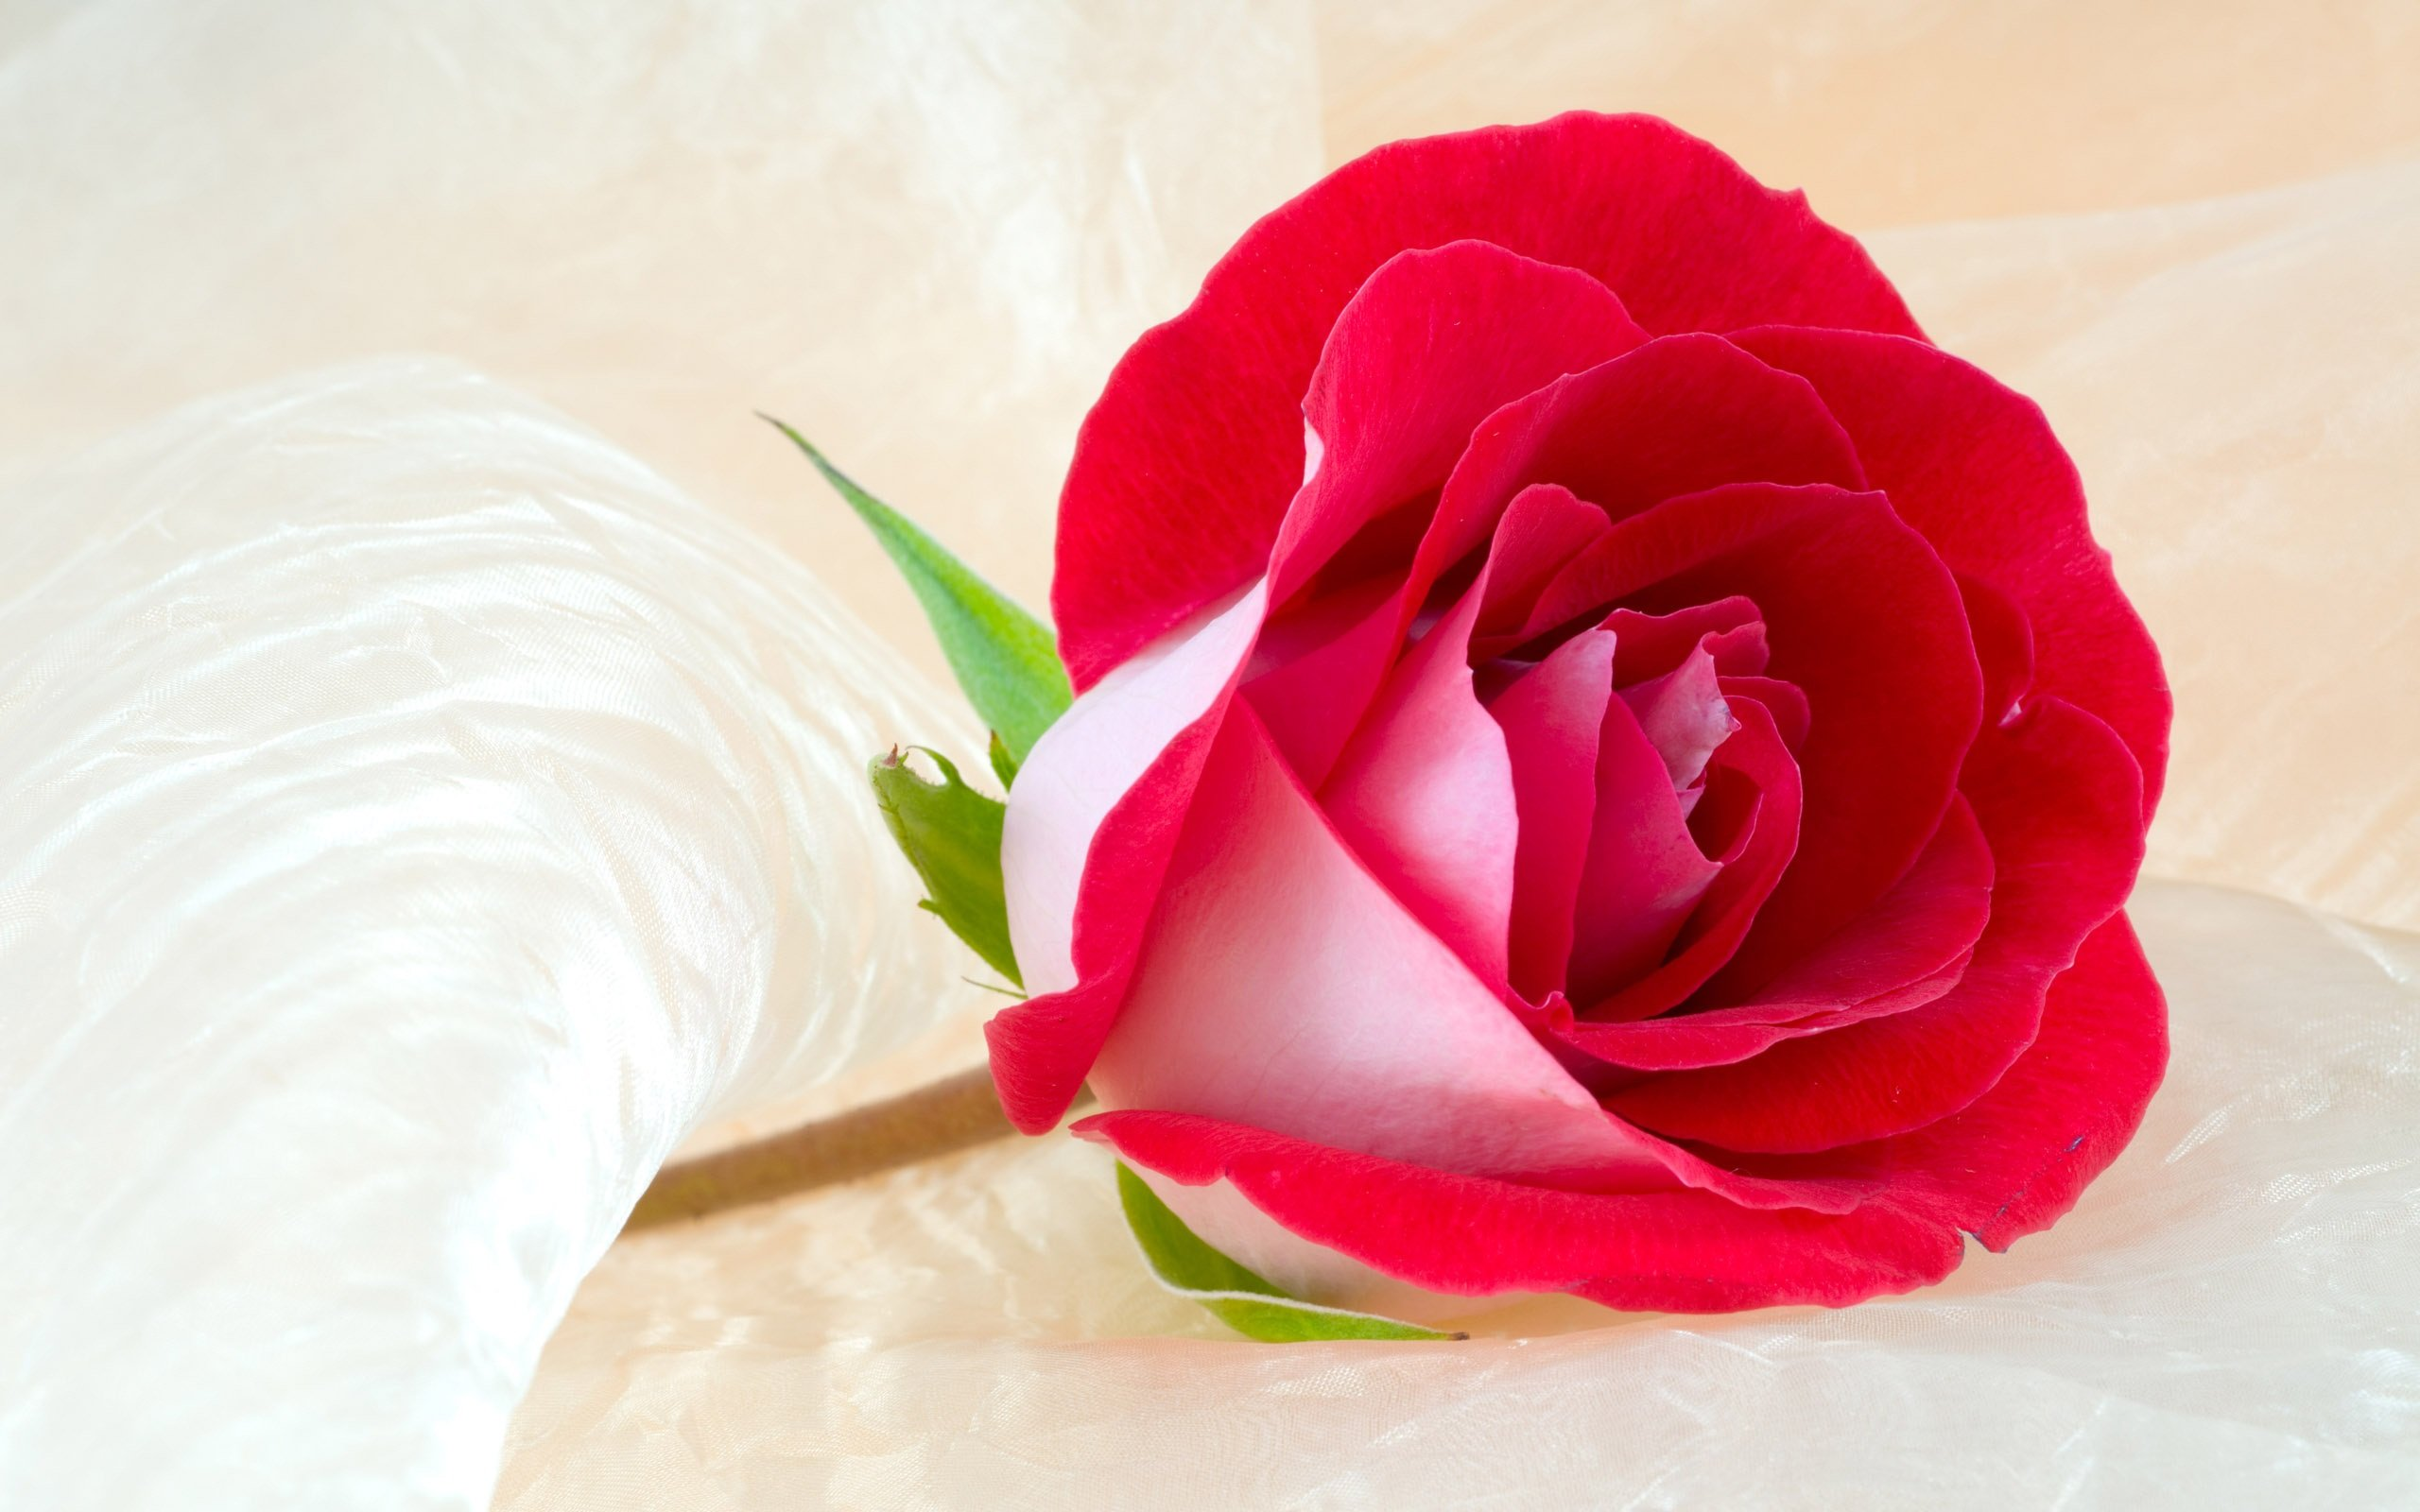 Most beautiful rose flowers wallpapers wallpapersafari rose flower most beautiful widescreen hd hd wallpapers rocks dhlflorist Choice Image